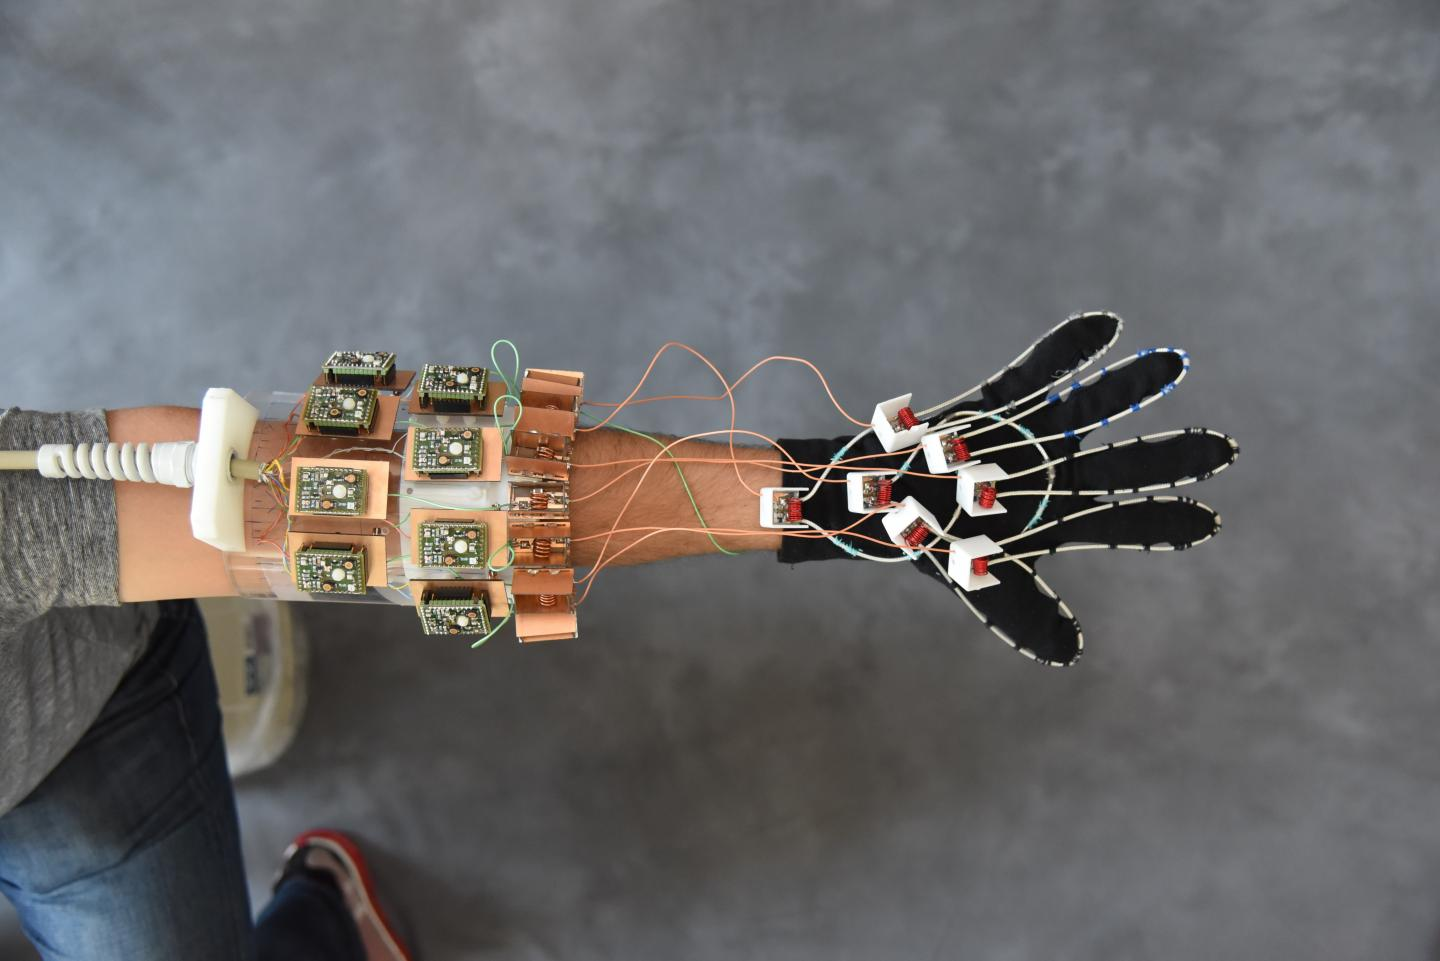 New Mri Glove For Bone And Joint Visualization Clinical Metal Detector Circuit Explanation When The Lc That Is L1 In A First Shaped Proved Capable Of Capturing Images